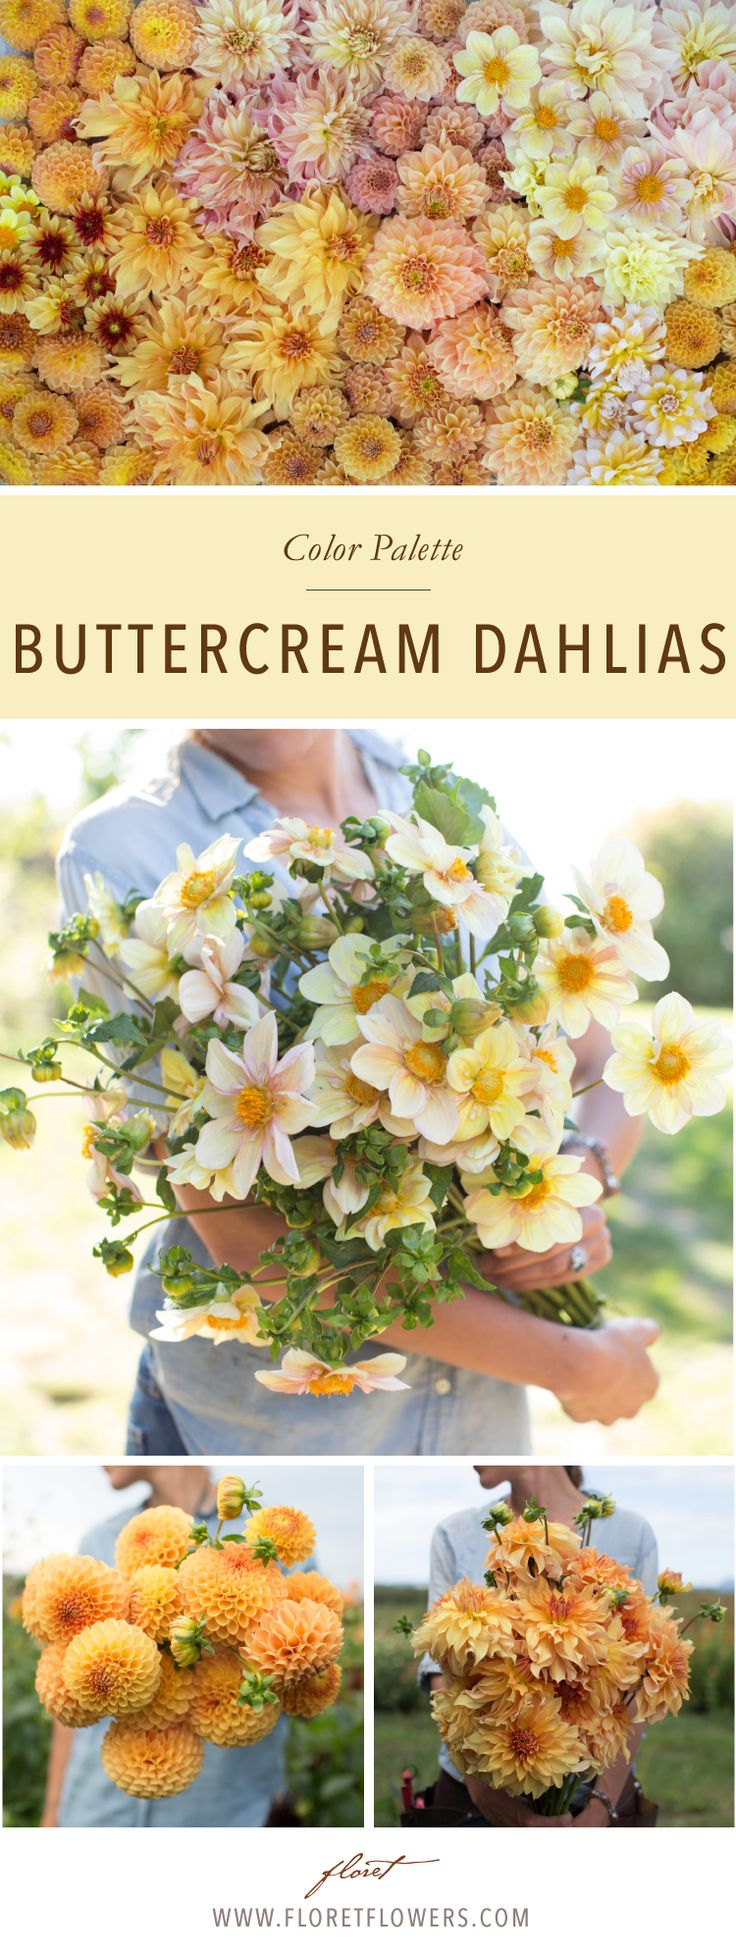 Floret's favorite pale yellow, buttercream dahlias: Formby Crest, Big Brother, Appleblossom, Bracken Palomino, Valley Tawny, Seattle, Breakout, Rock Run Ashley, Penhill Watermelon, Blyton Softer Gleam, Irish Pinwheel, Suncrest, Golden Scepter.